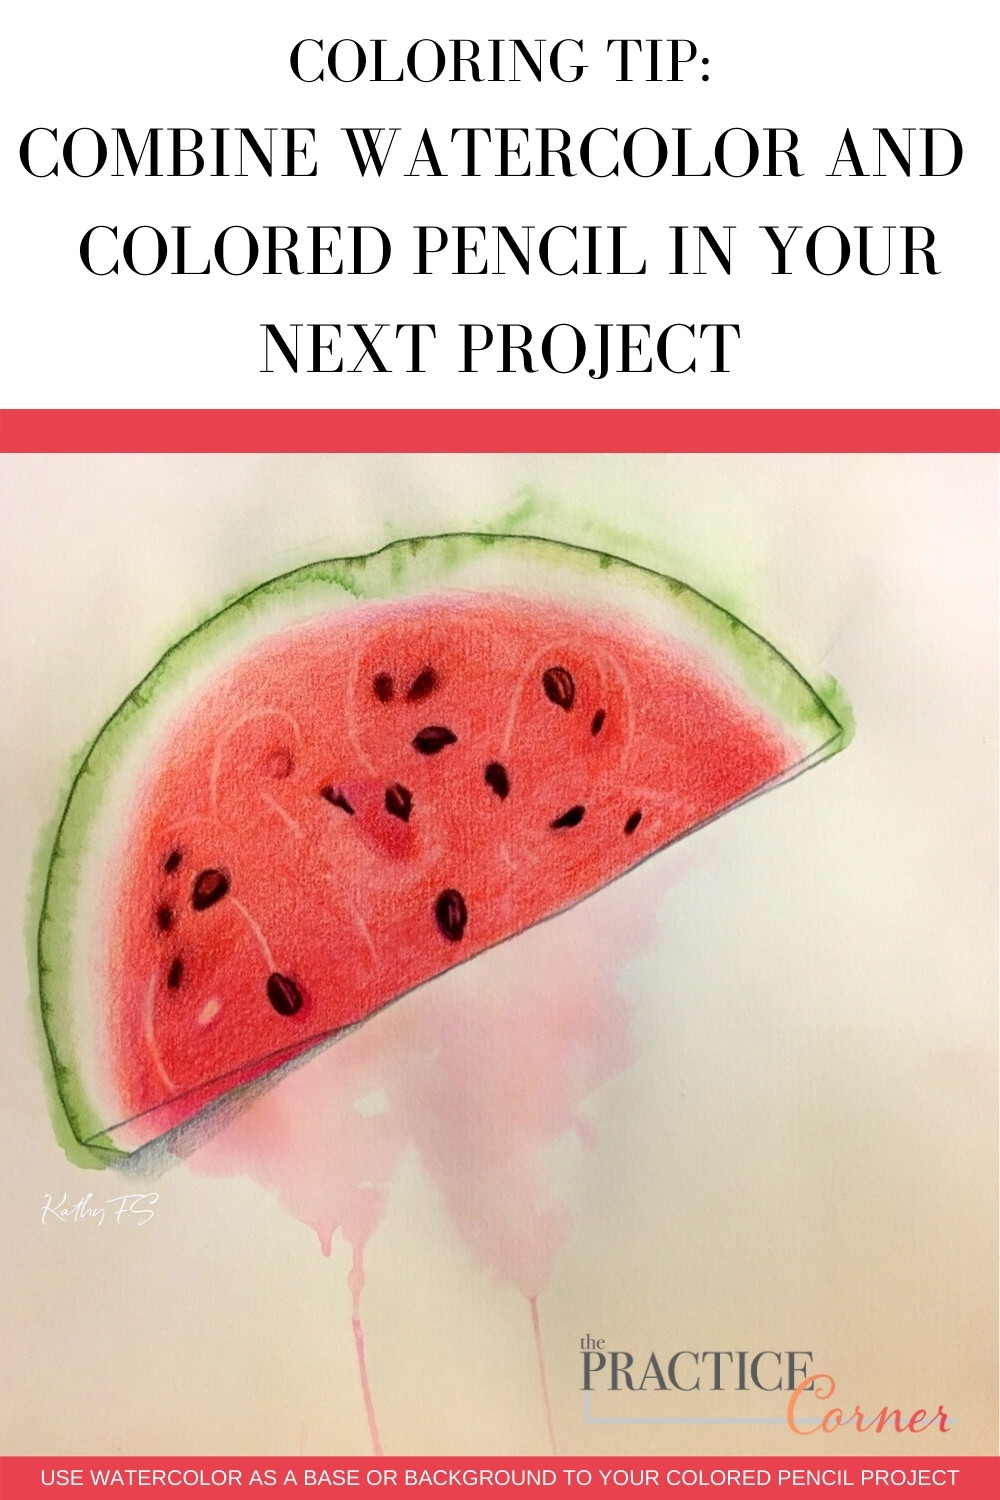 Combine watercolor and colored pencils in your next project. | The Practice Corner | #coloredpencilpractice #coloringtechniques